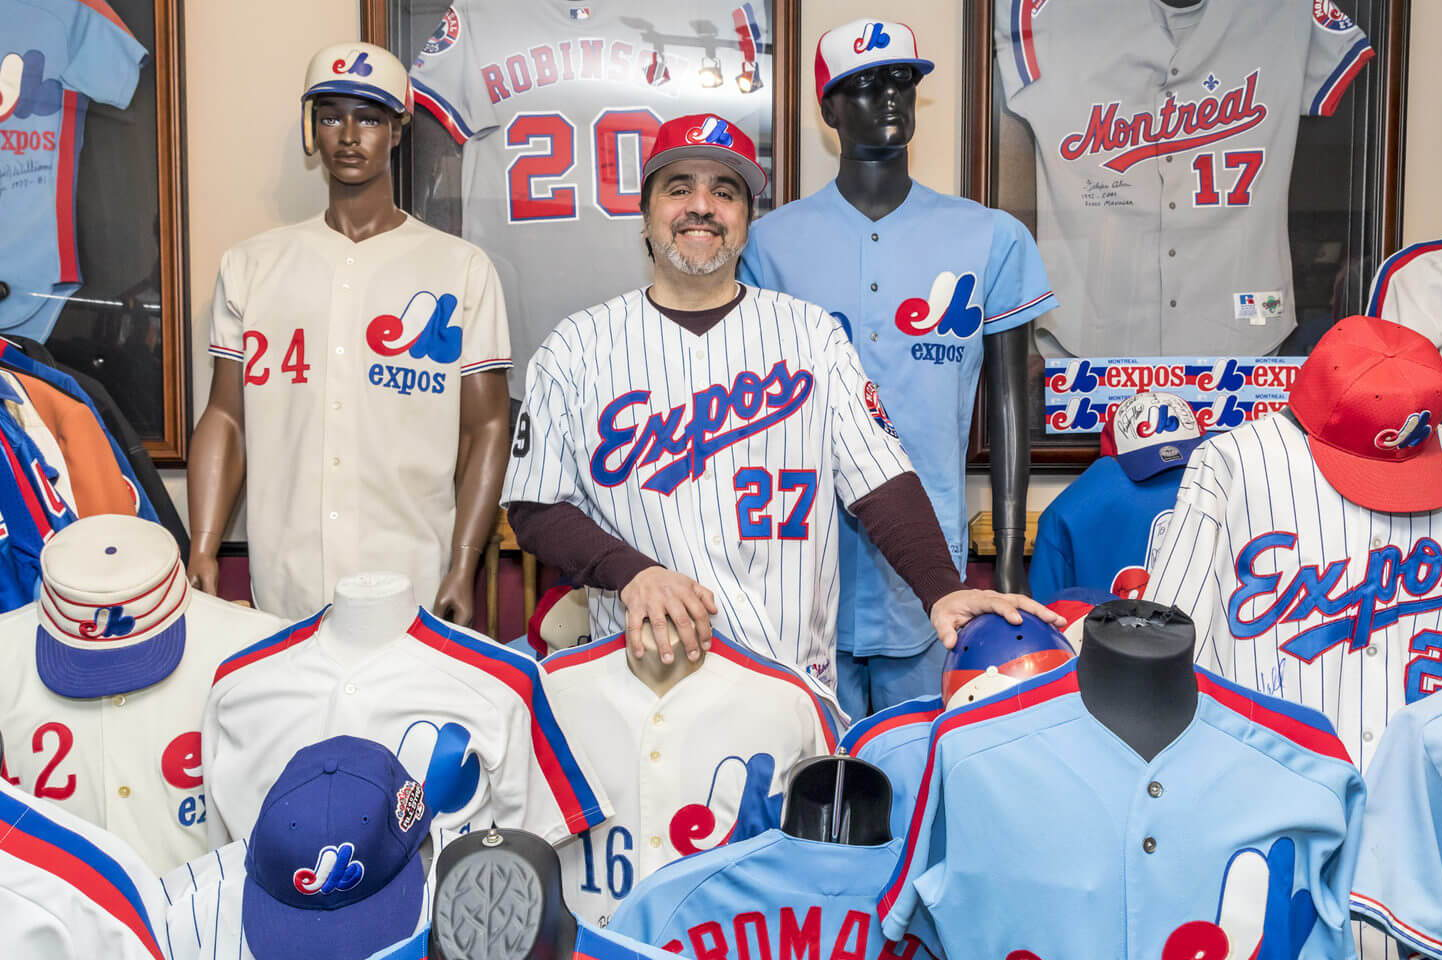 Montreal Expos Prop Bets: Will Expos Return to MLB By 2022?